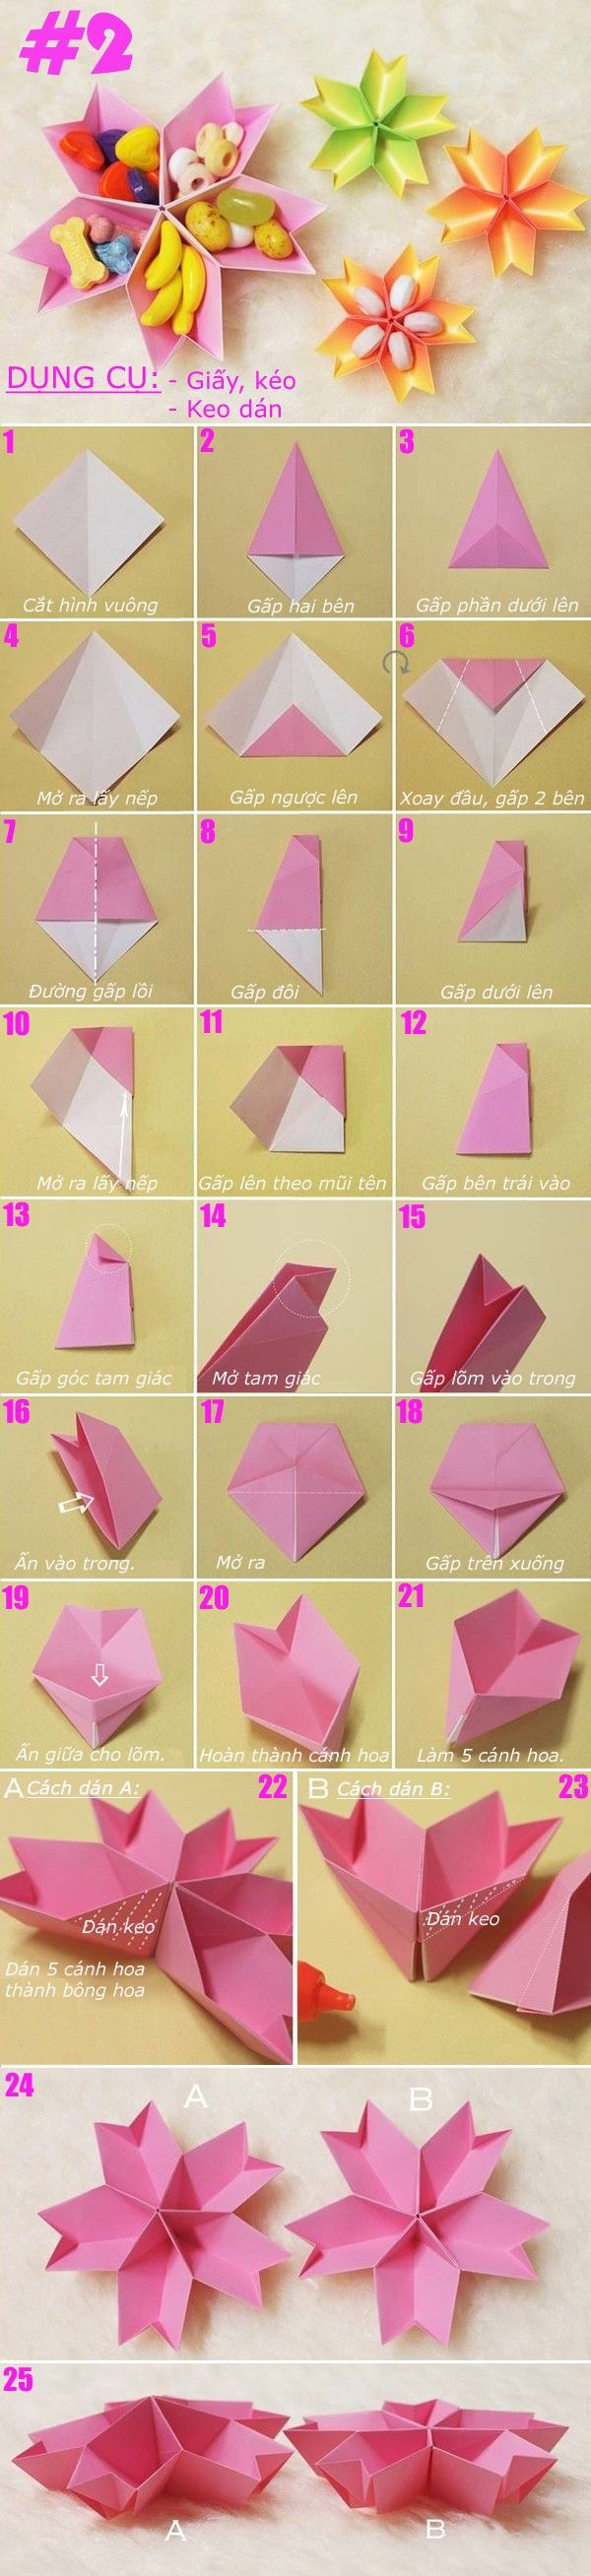 Fold the paper into all sorts of useful containers 2